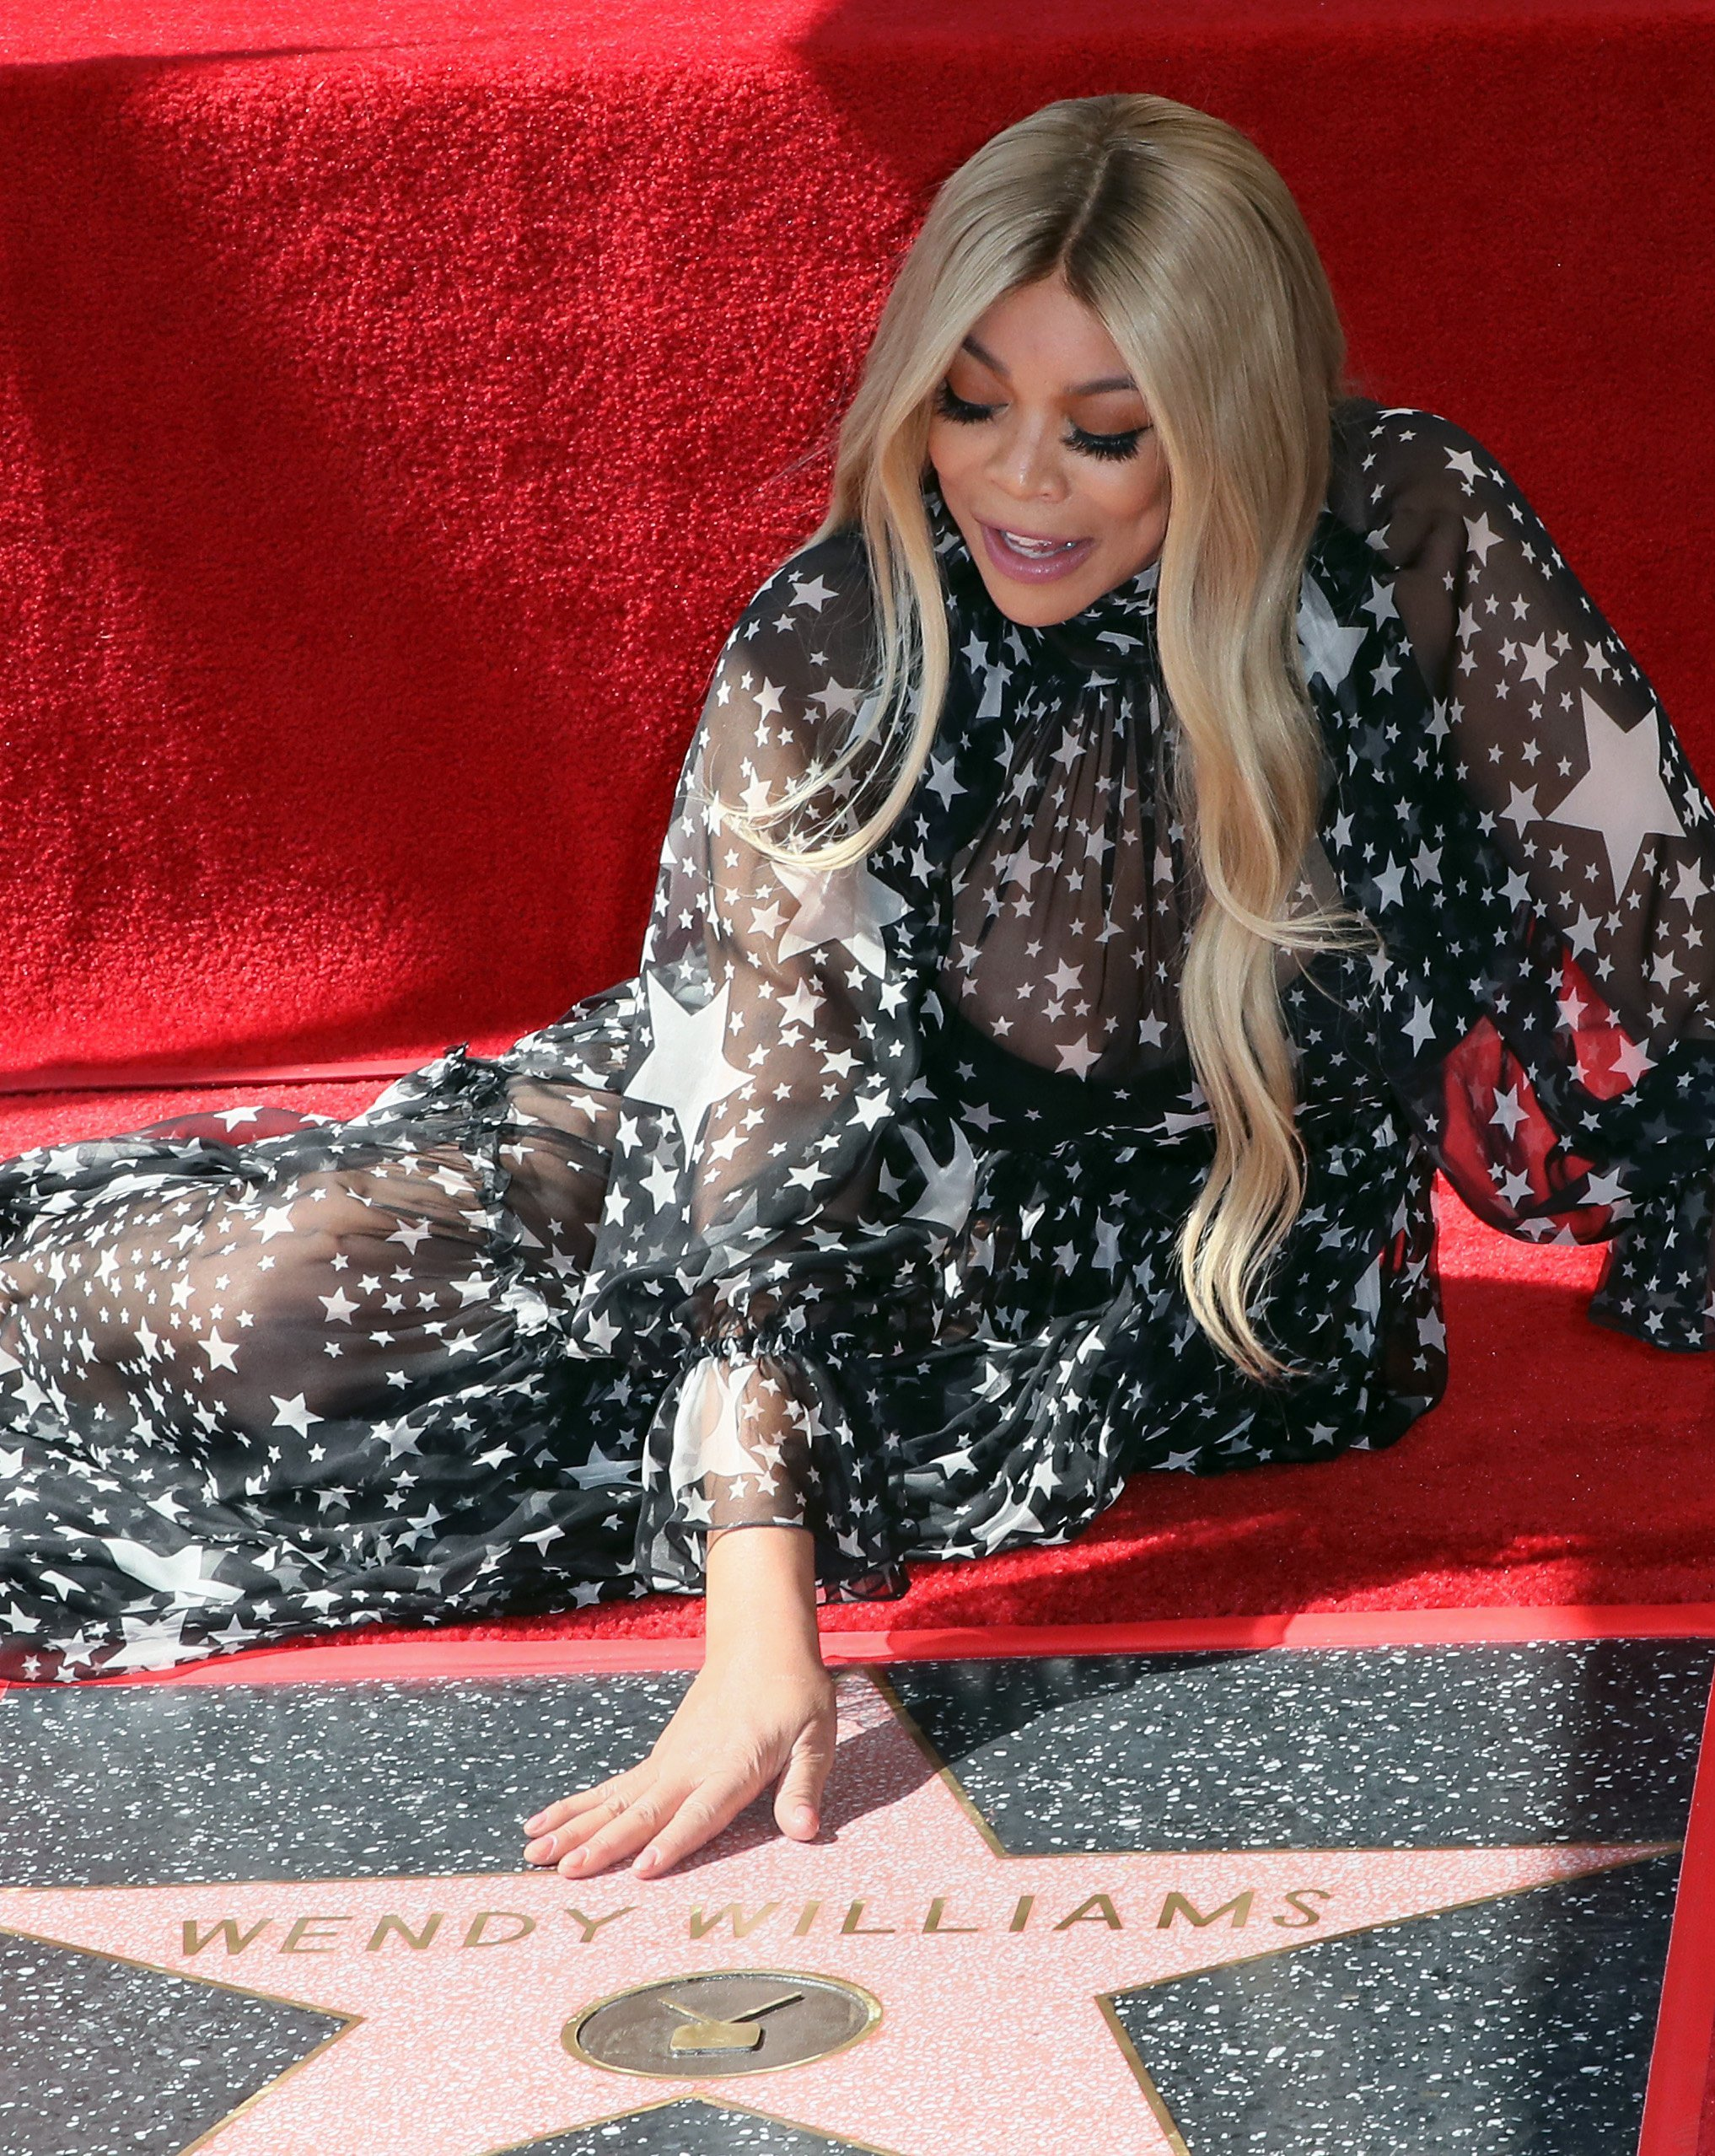 Wendy Williams marveling at her star at the Hollywood Walk of Fame. | Photo: Getty Images